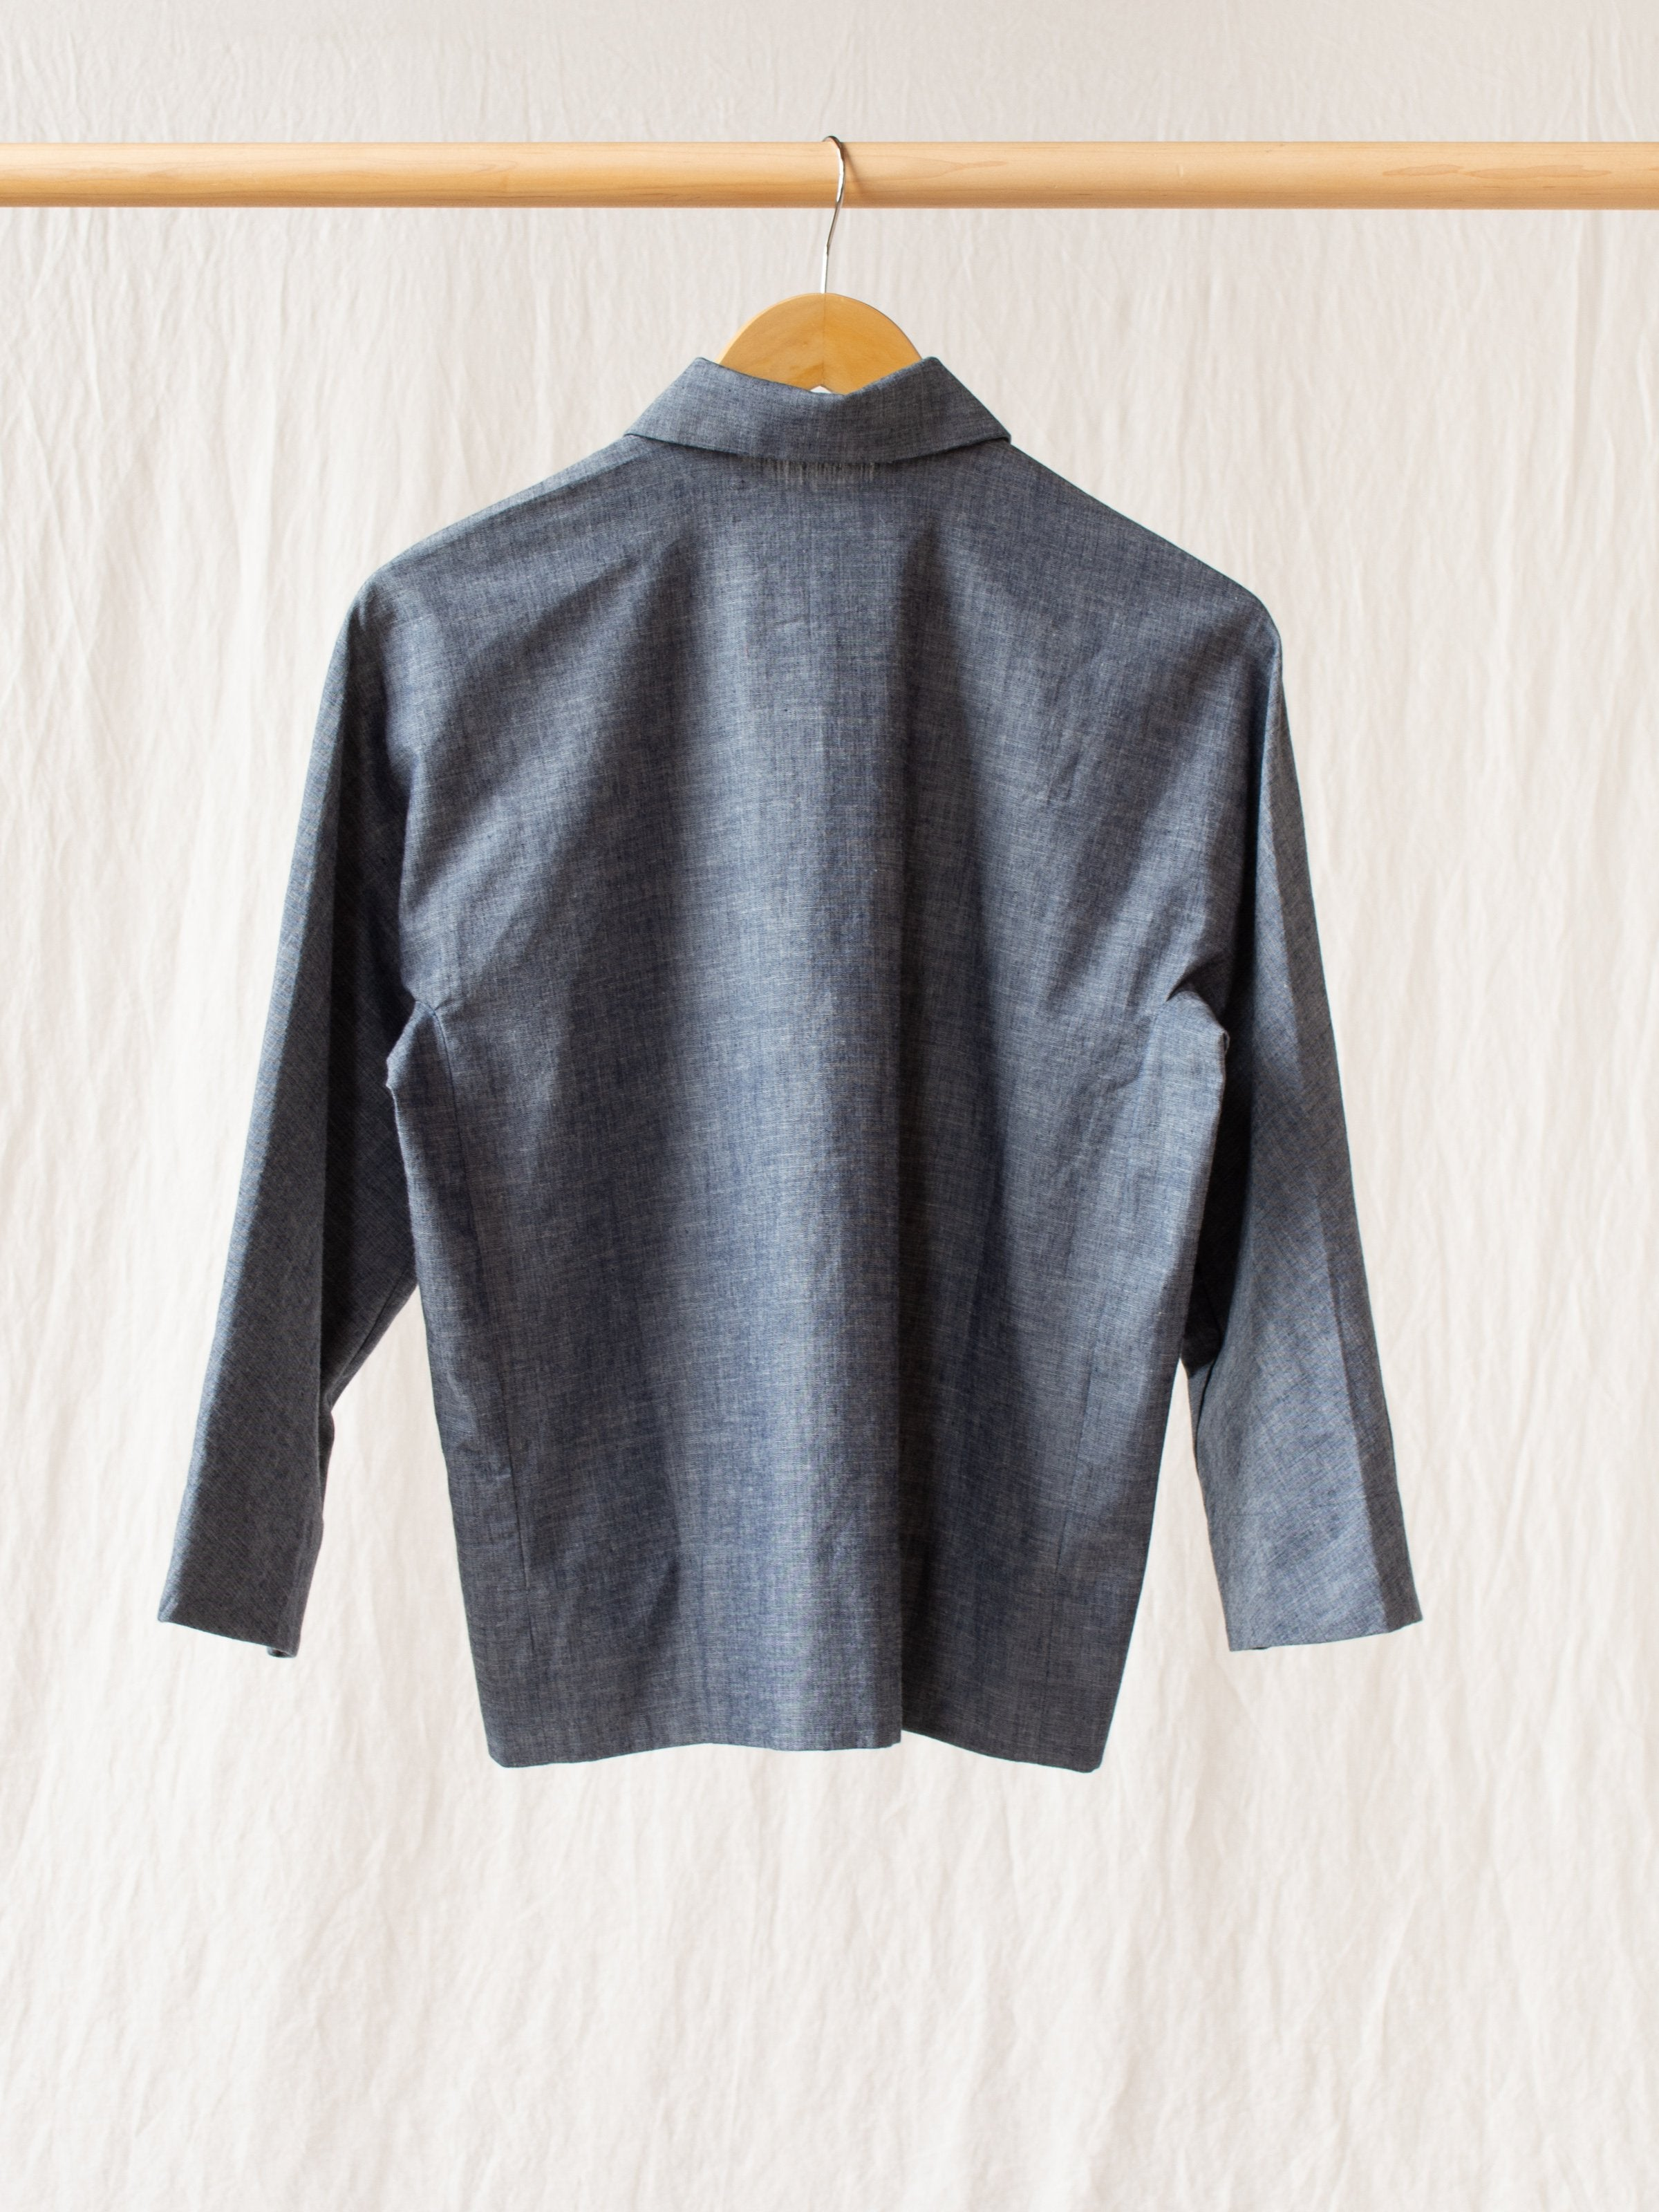 Namu Shop - Jan Machenhauer Thyme Shirt - Chambray